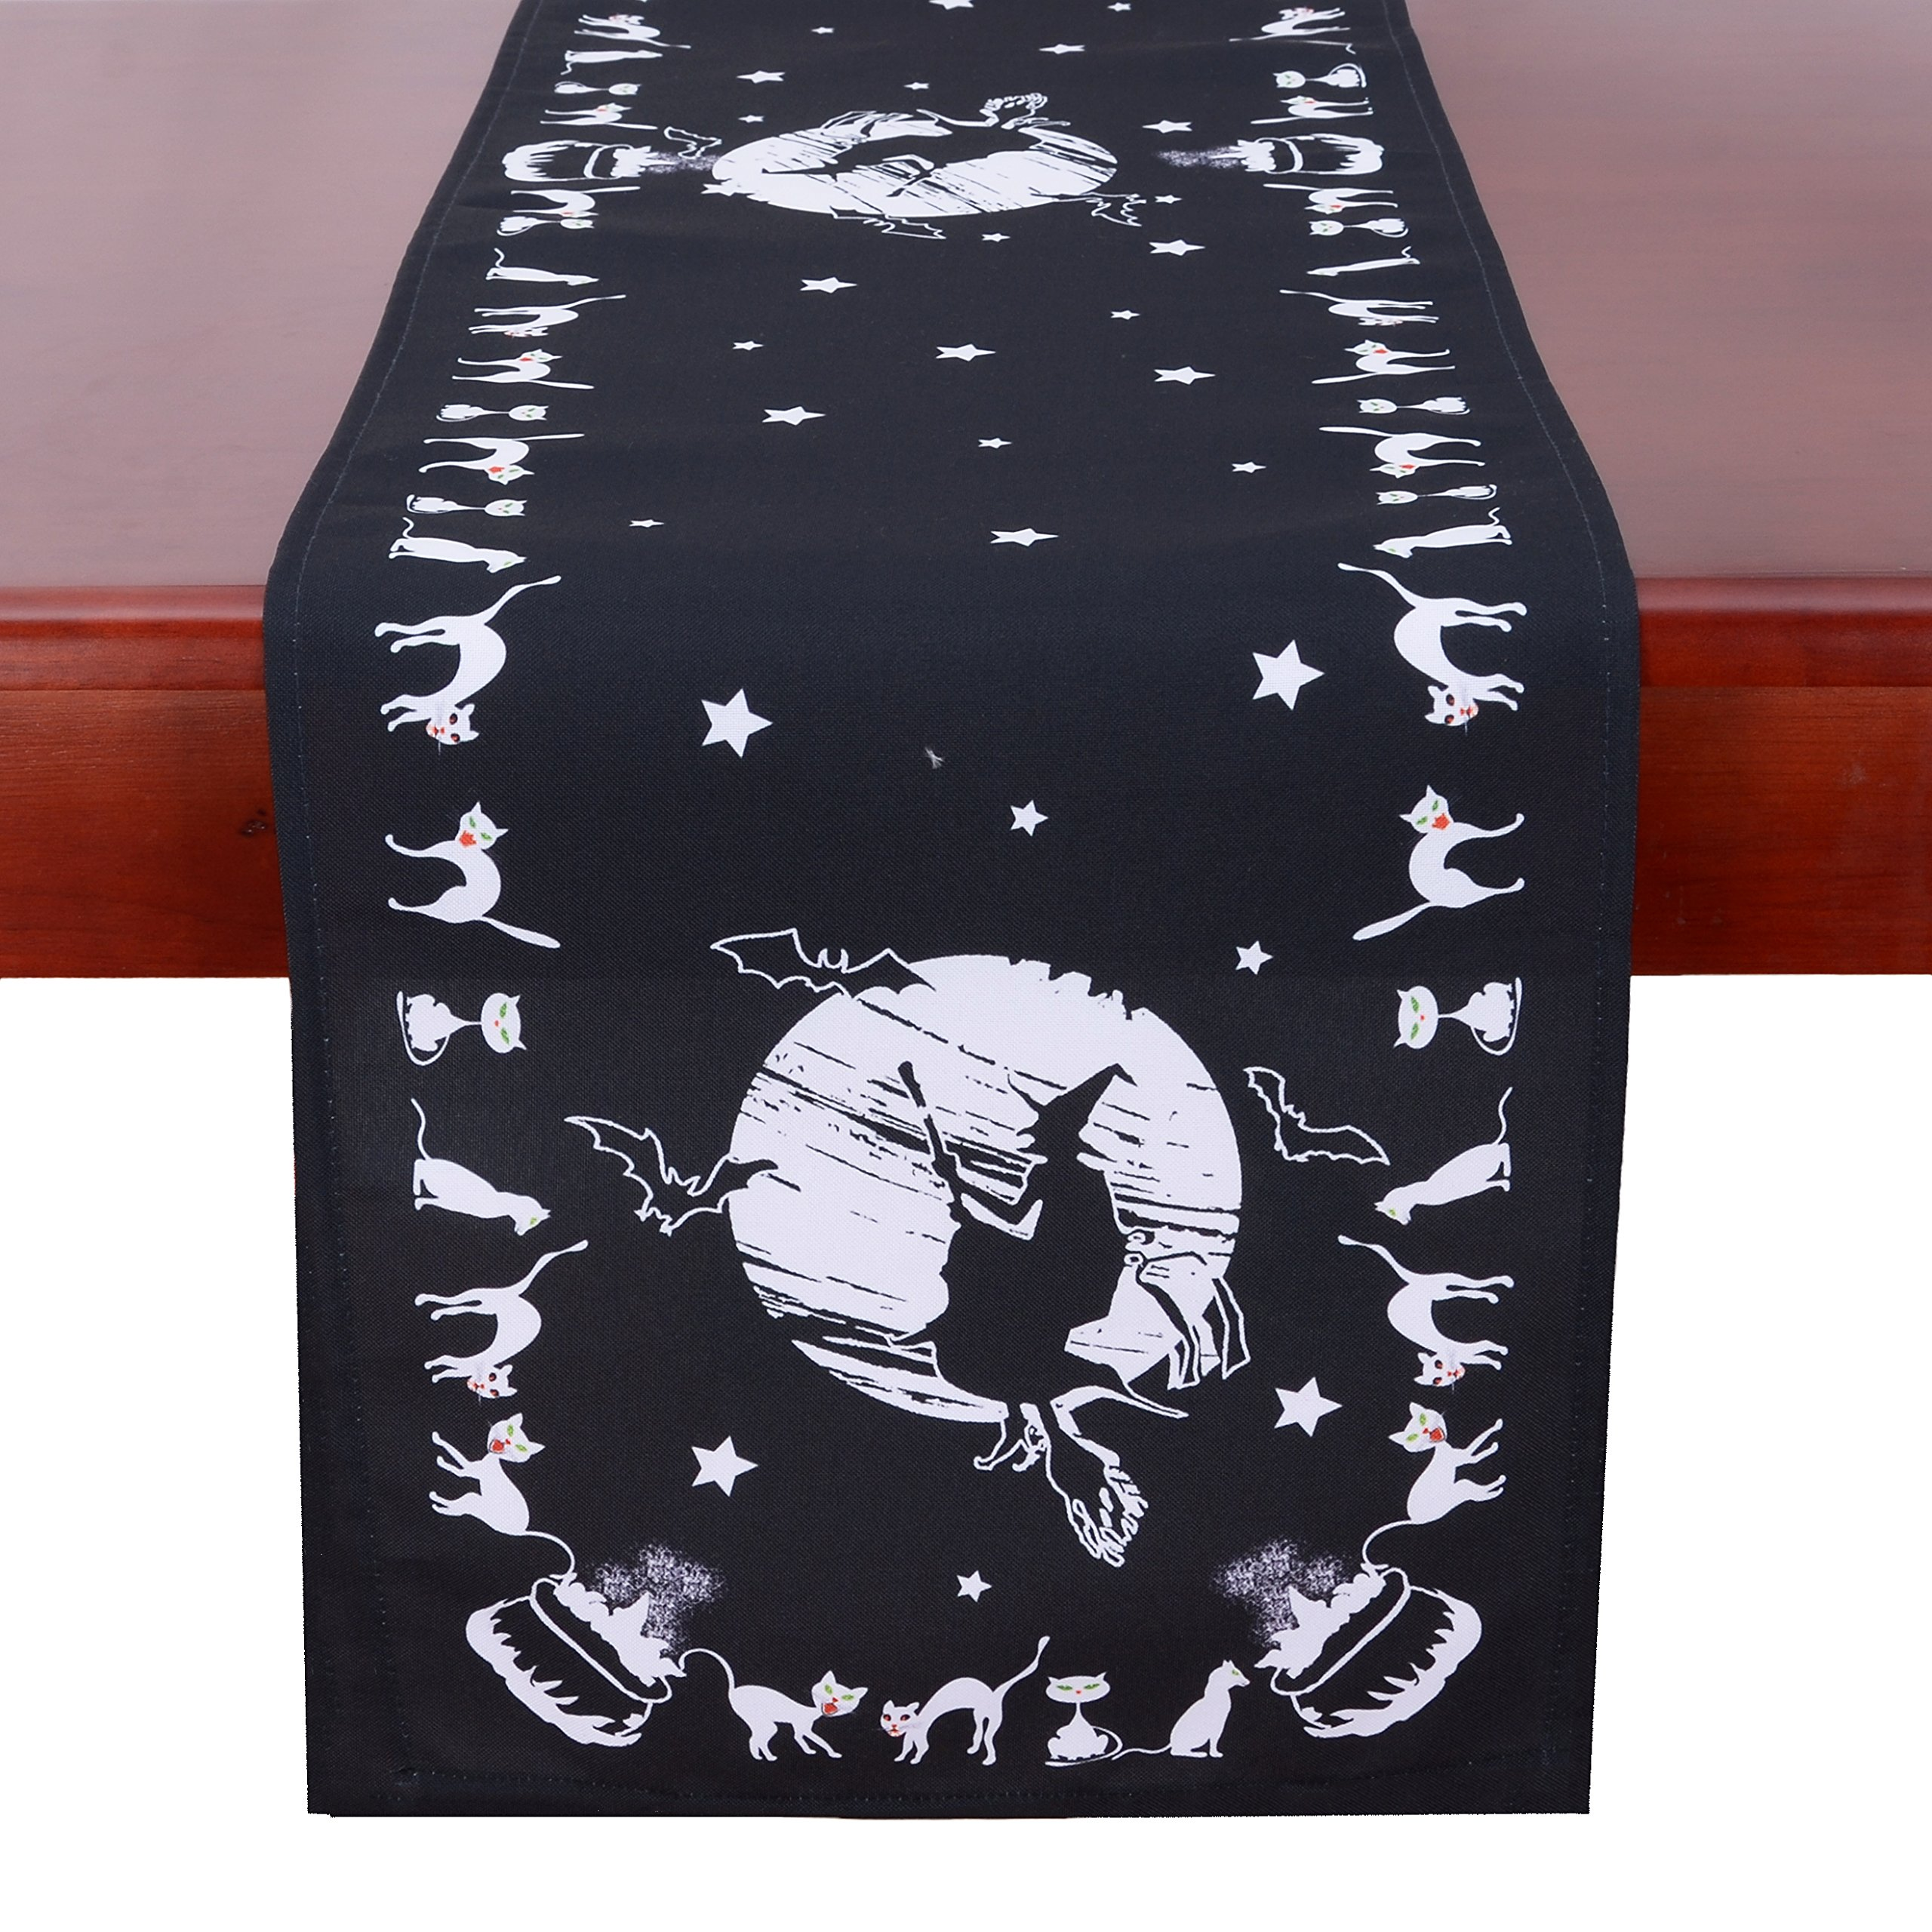 Simhomsen Halloween Table Runner for Dinner Party and Scary Movie Nights, Printed Spooky Wicked Witch (16 × 90 inch)